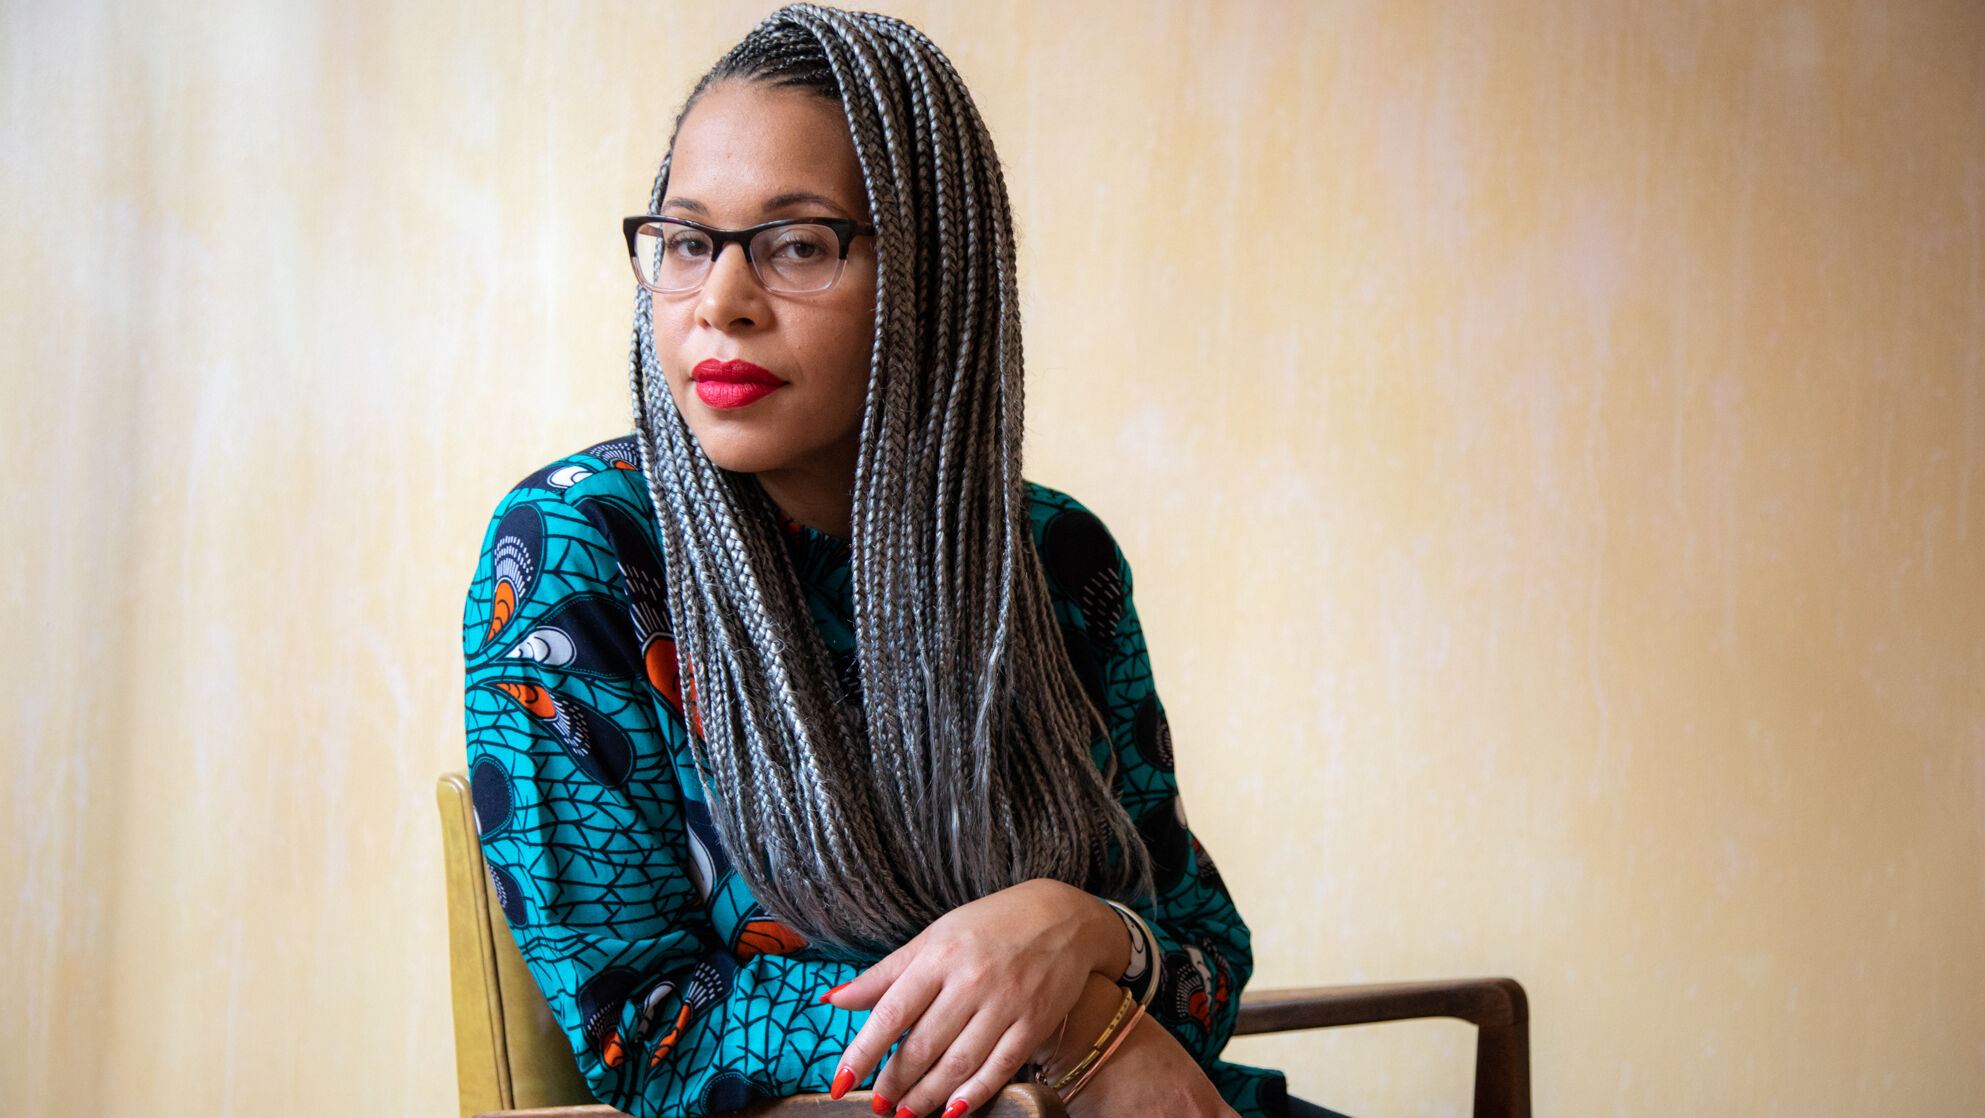 A black woman with long braid extensions sits sideways in a chair. She has glasses.